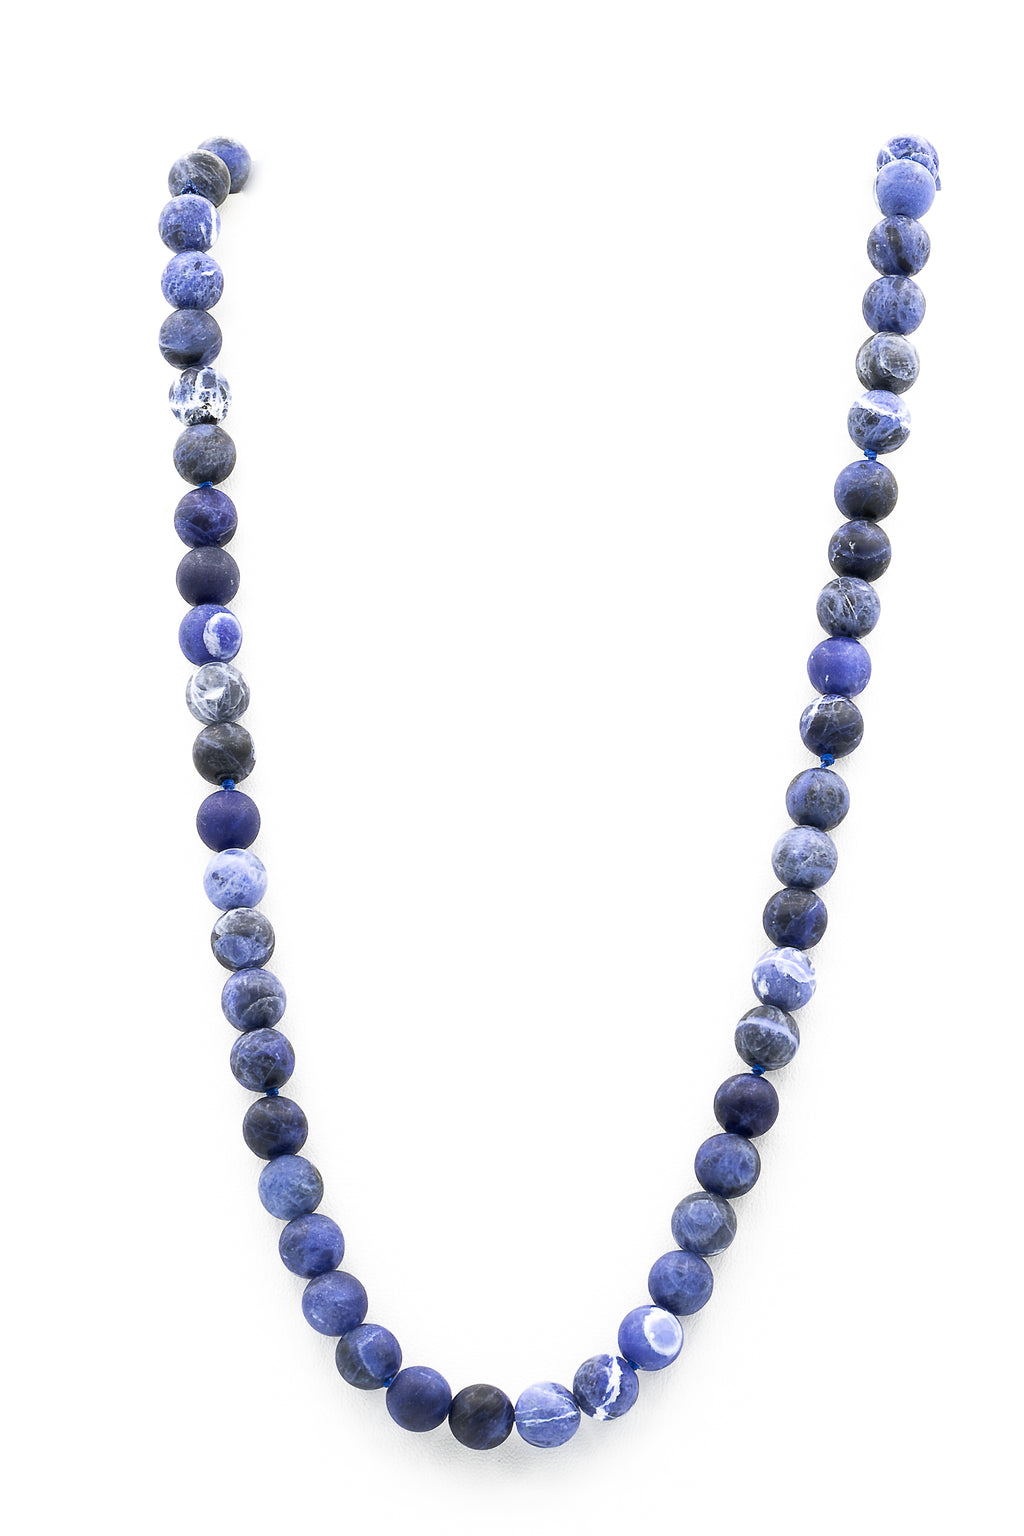 "<img src=""IMG_8084.JPG"" alt=""Sodalite Natural Stone Necklace 8mm-10mm-30 Inches"">"